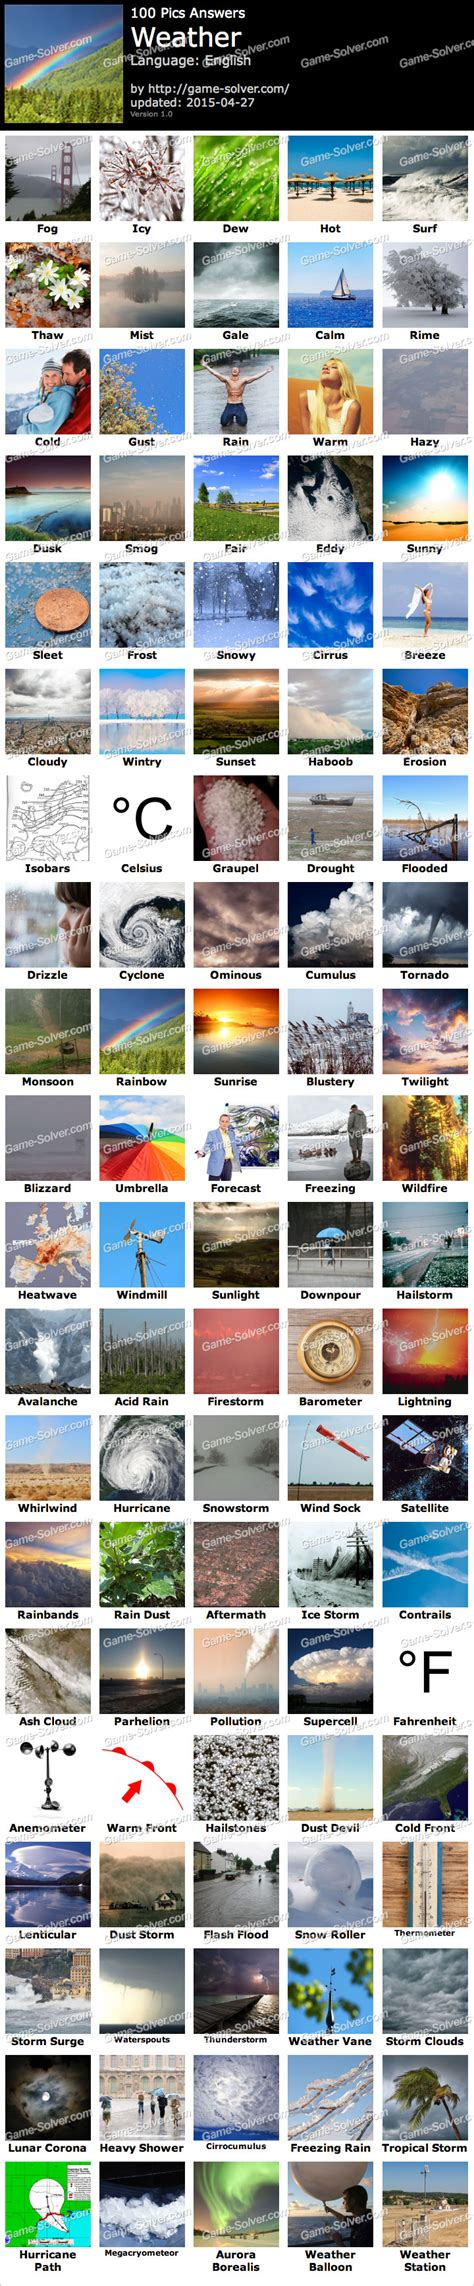 100 Pics Weather  Game Solver